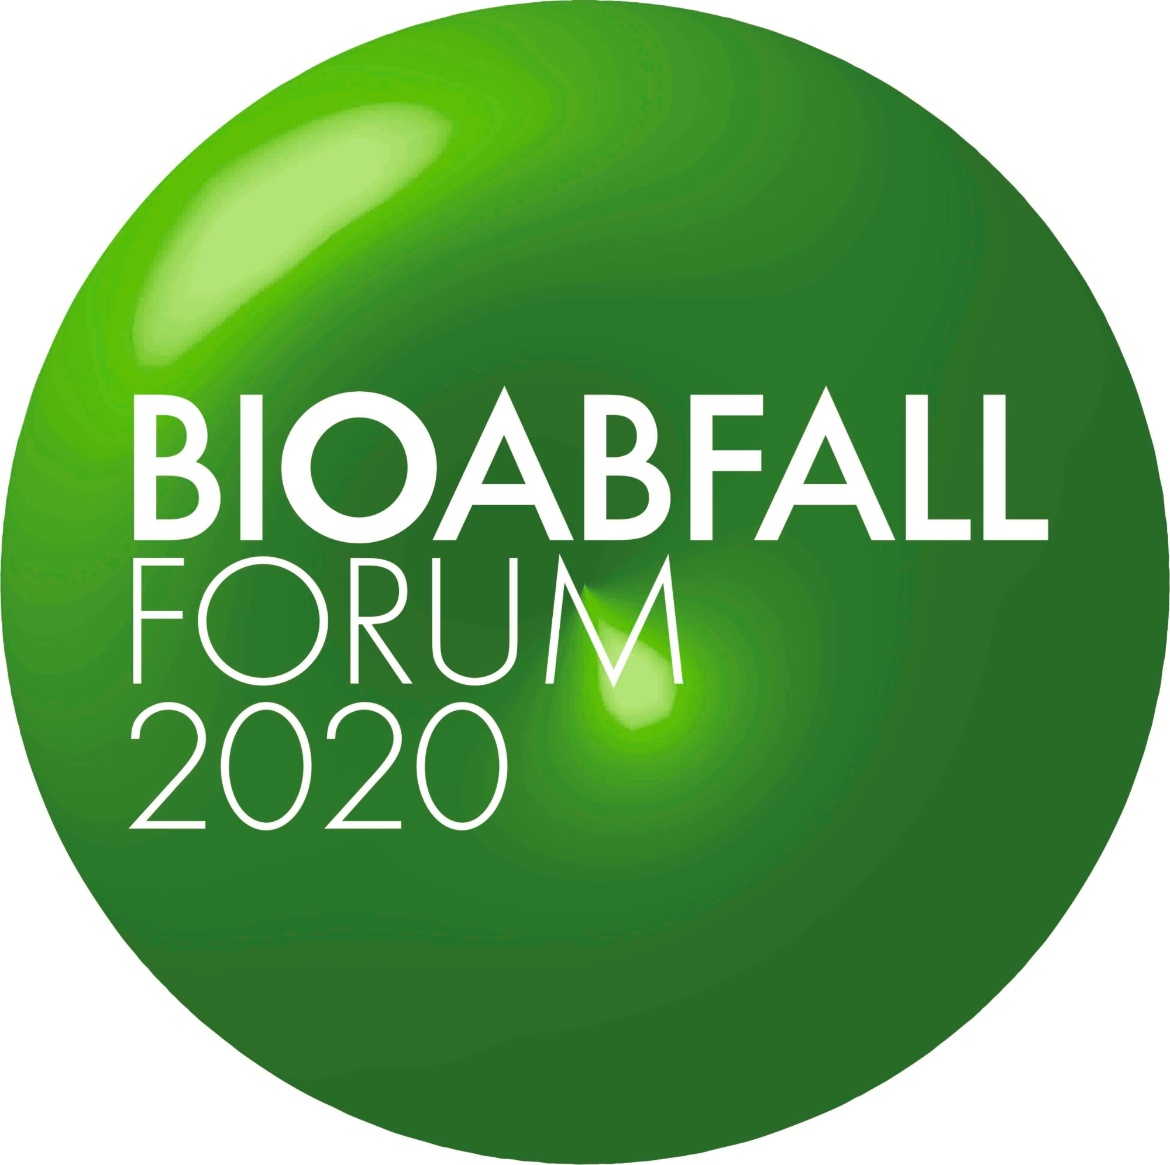 Bioabfallforum 2020